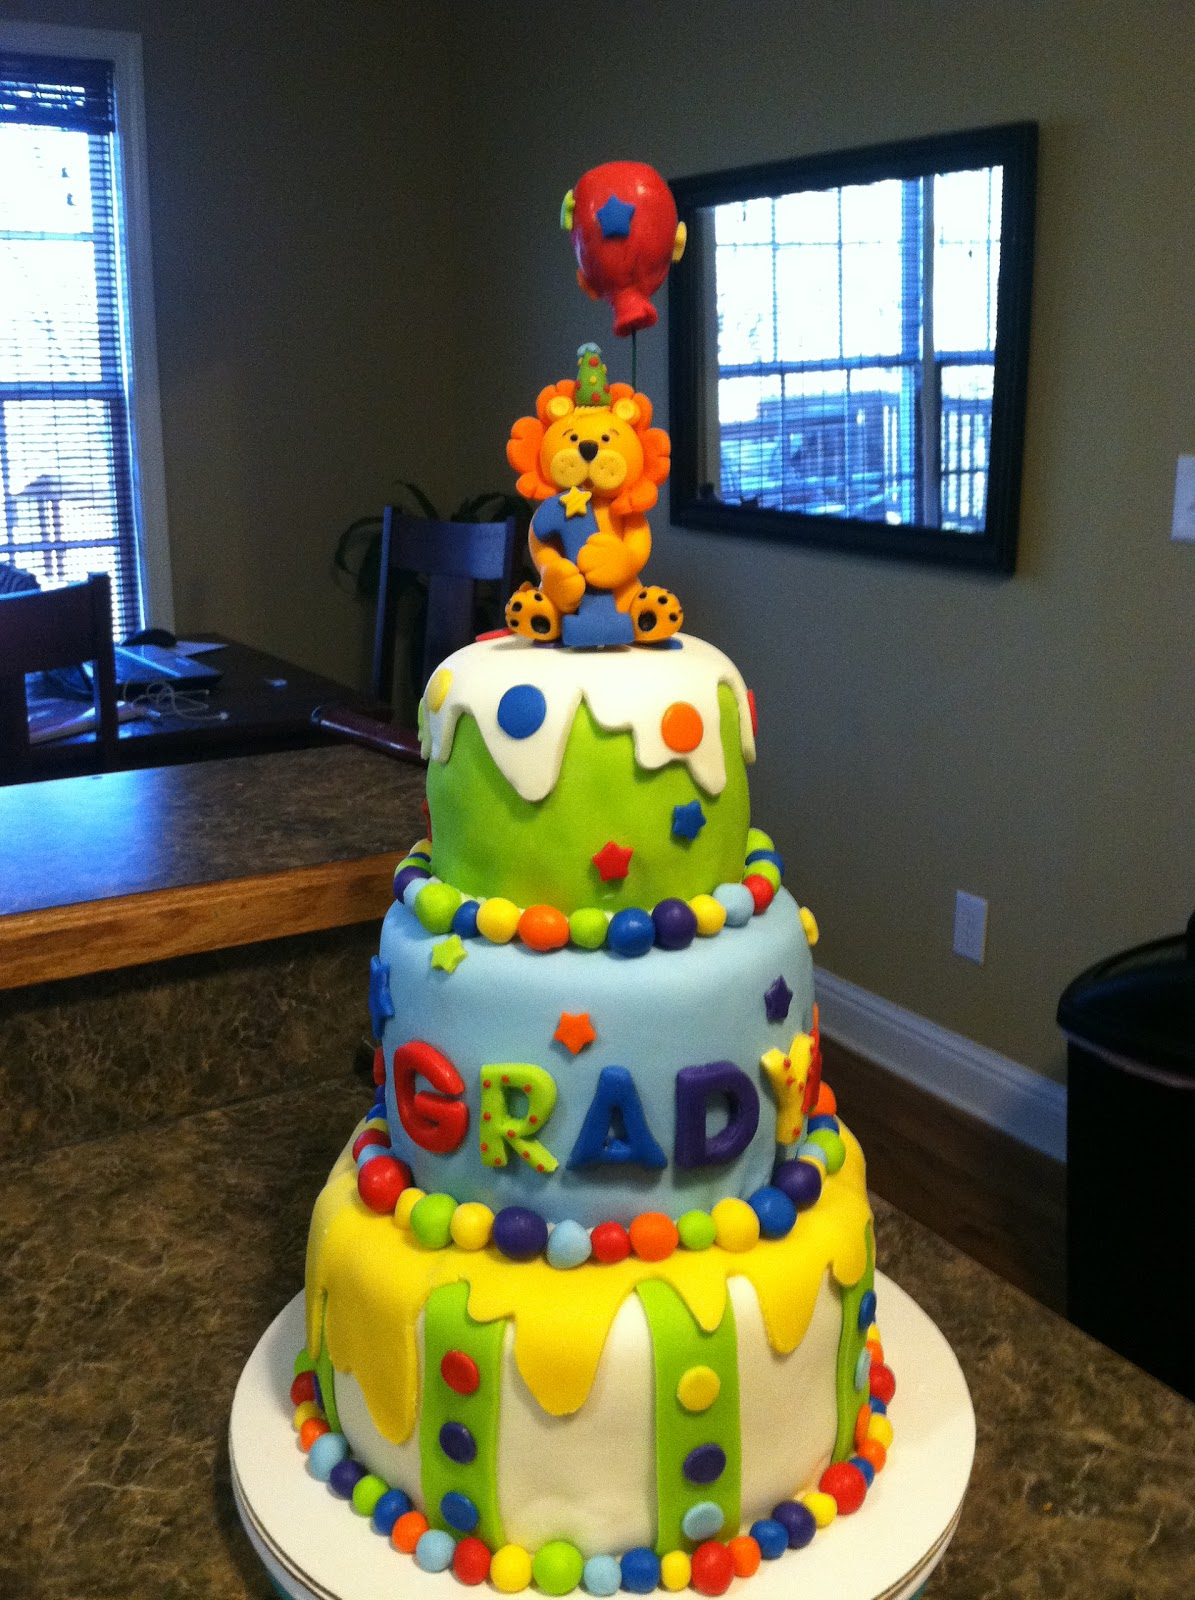 Cake Decorating Ideas For Baby S First Birthday : Brandi Cakes: Baby Boy First Birthday Circus Cake